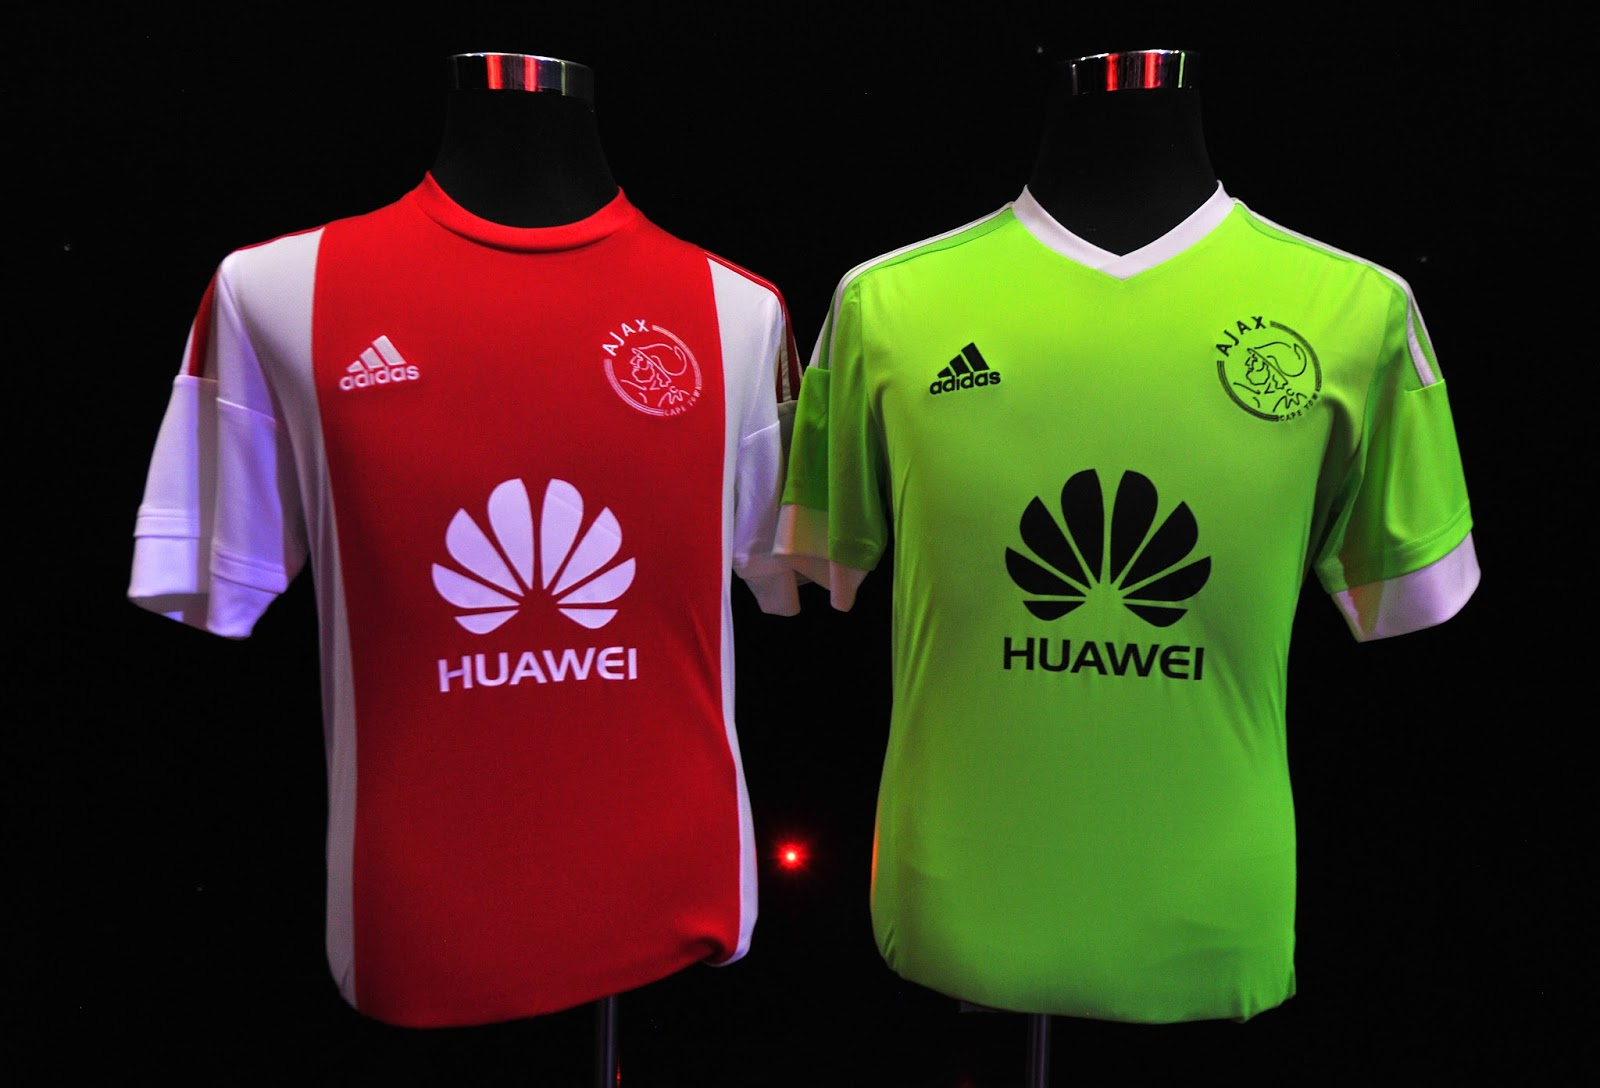 bb277d960 The Ajax Cape Town sponsorship announced last year was the first such deal  in South Africa for the global smartphone brand. The team will don its new  kit ...